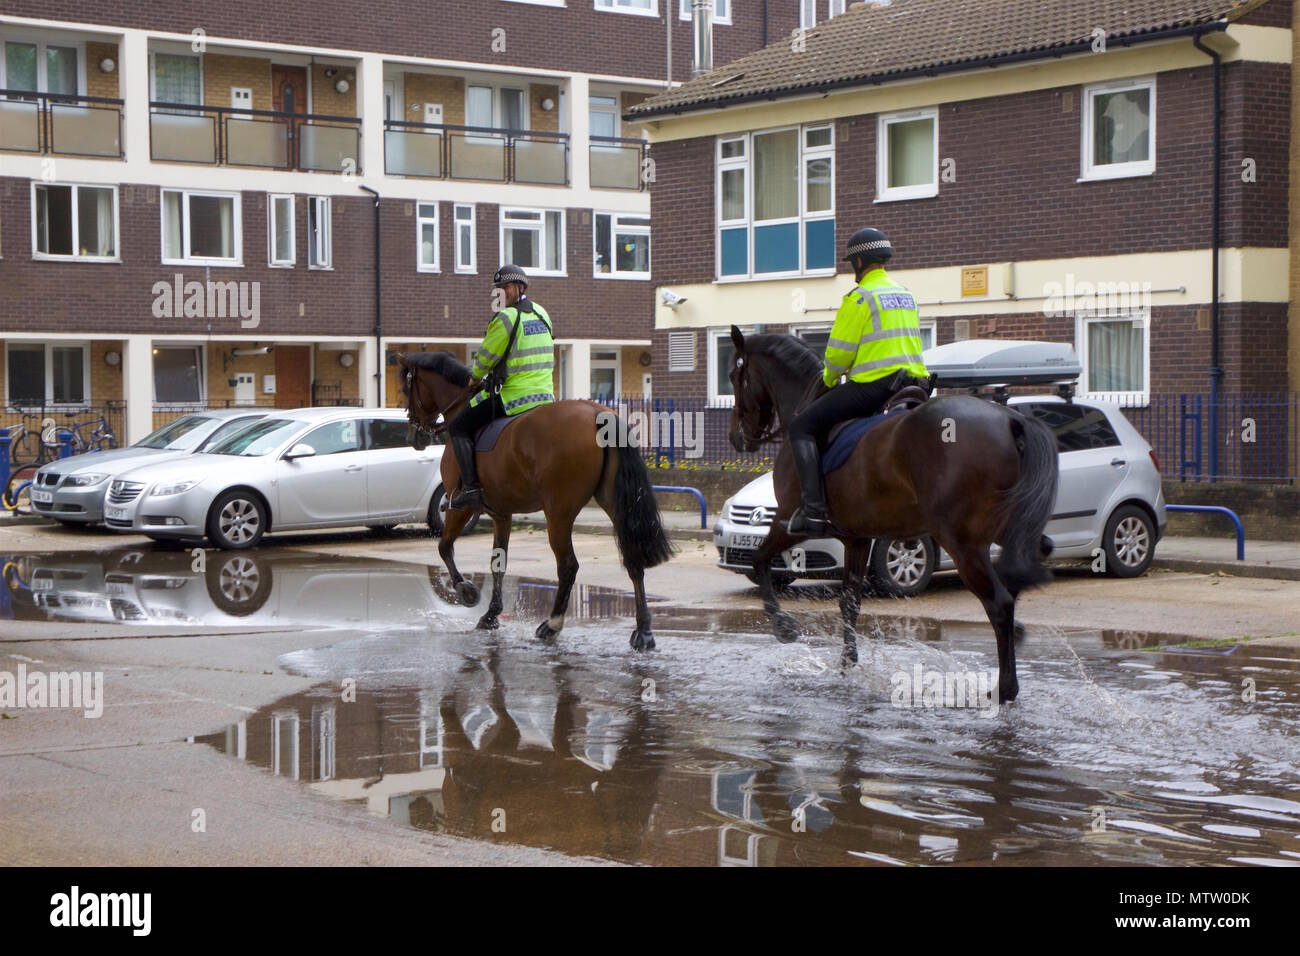 Two Metropolitan Policemen riding horses that are trotting through a puddle on the way to the stables in Bow, Tower Hamlets, London - Stock Image